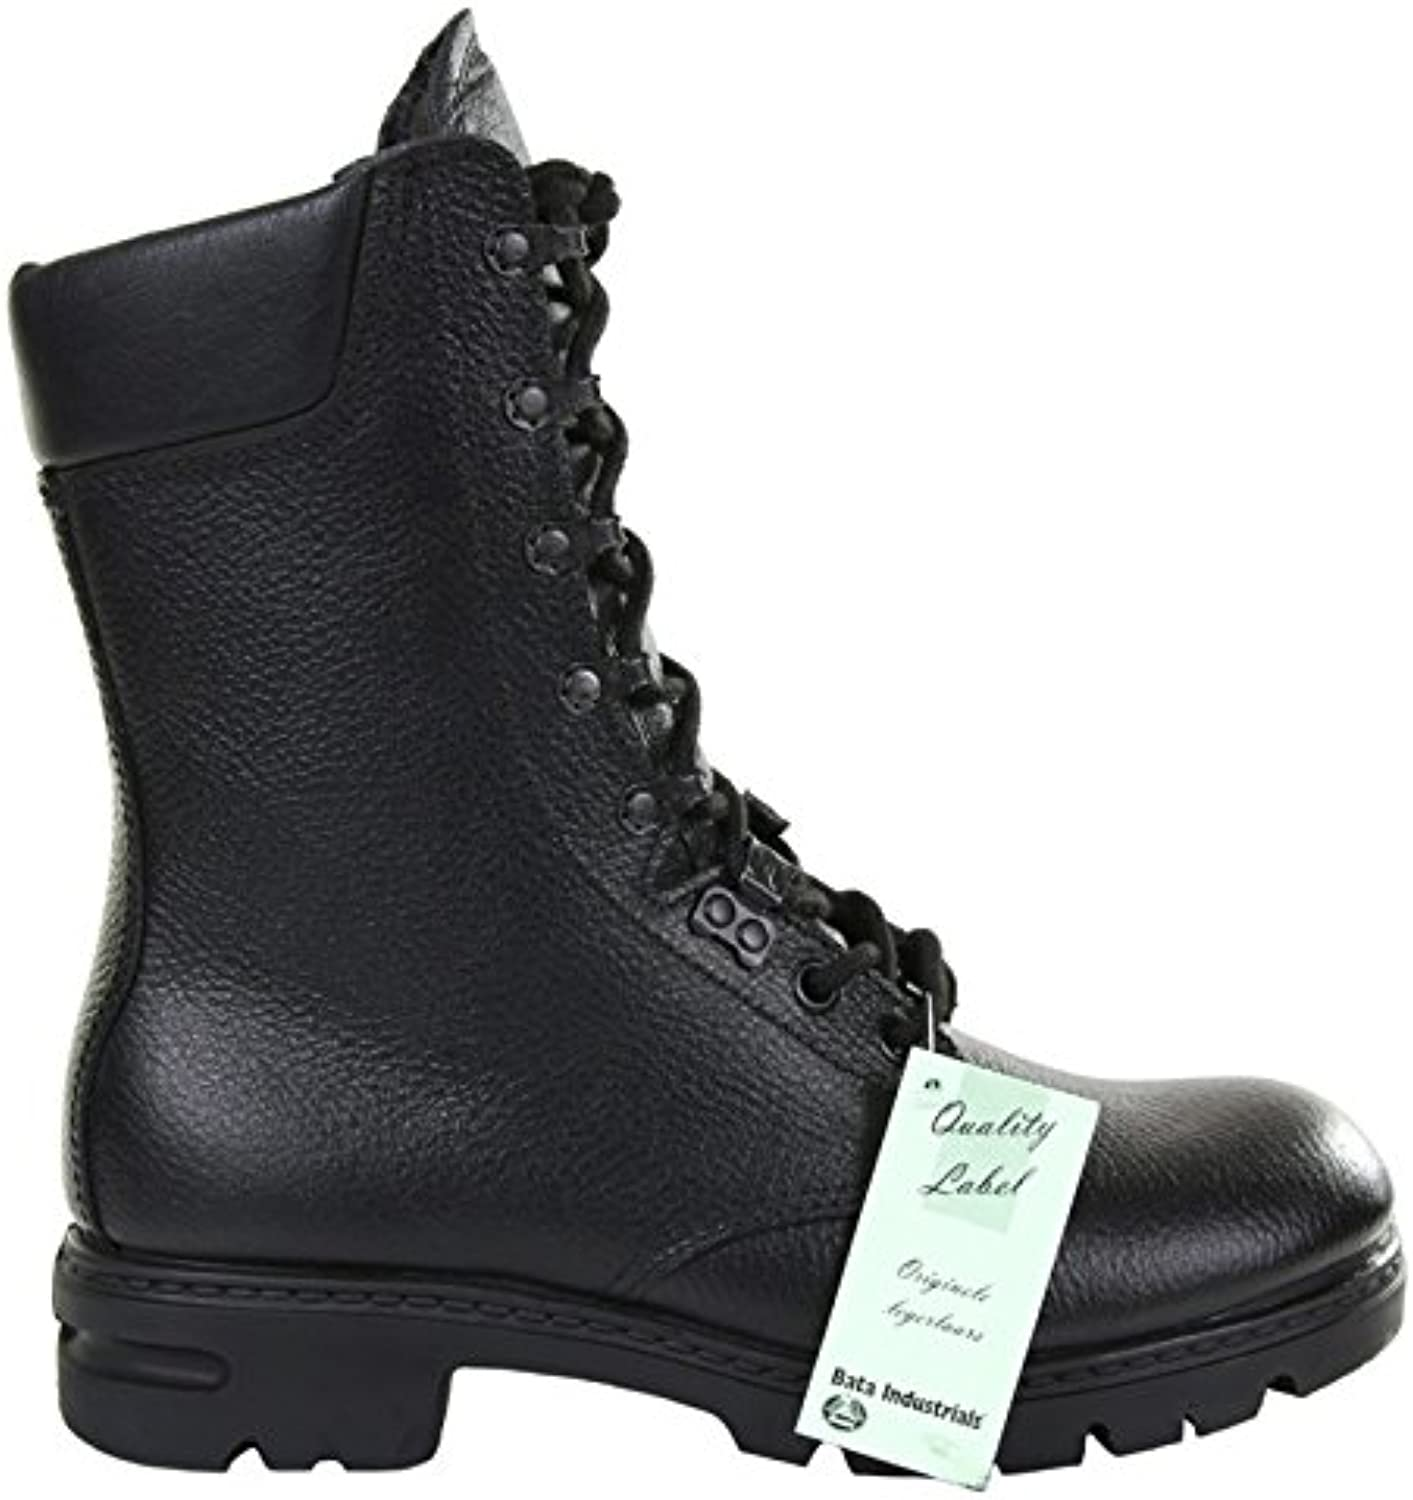 BOOTS DOLOMITE FLASH PLUS 2 GORETEX VIBRAM